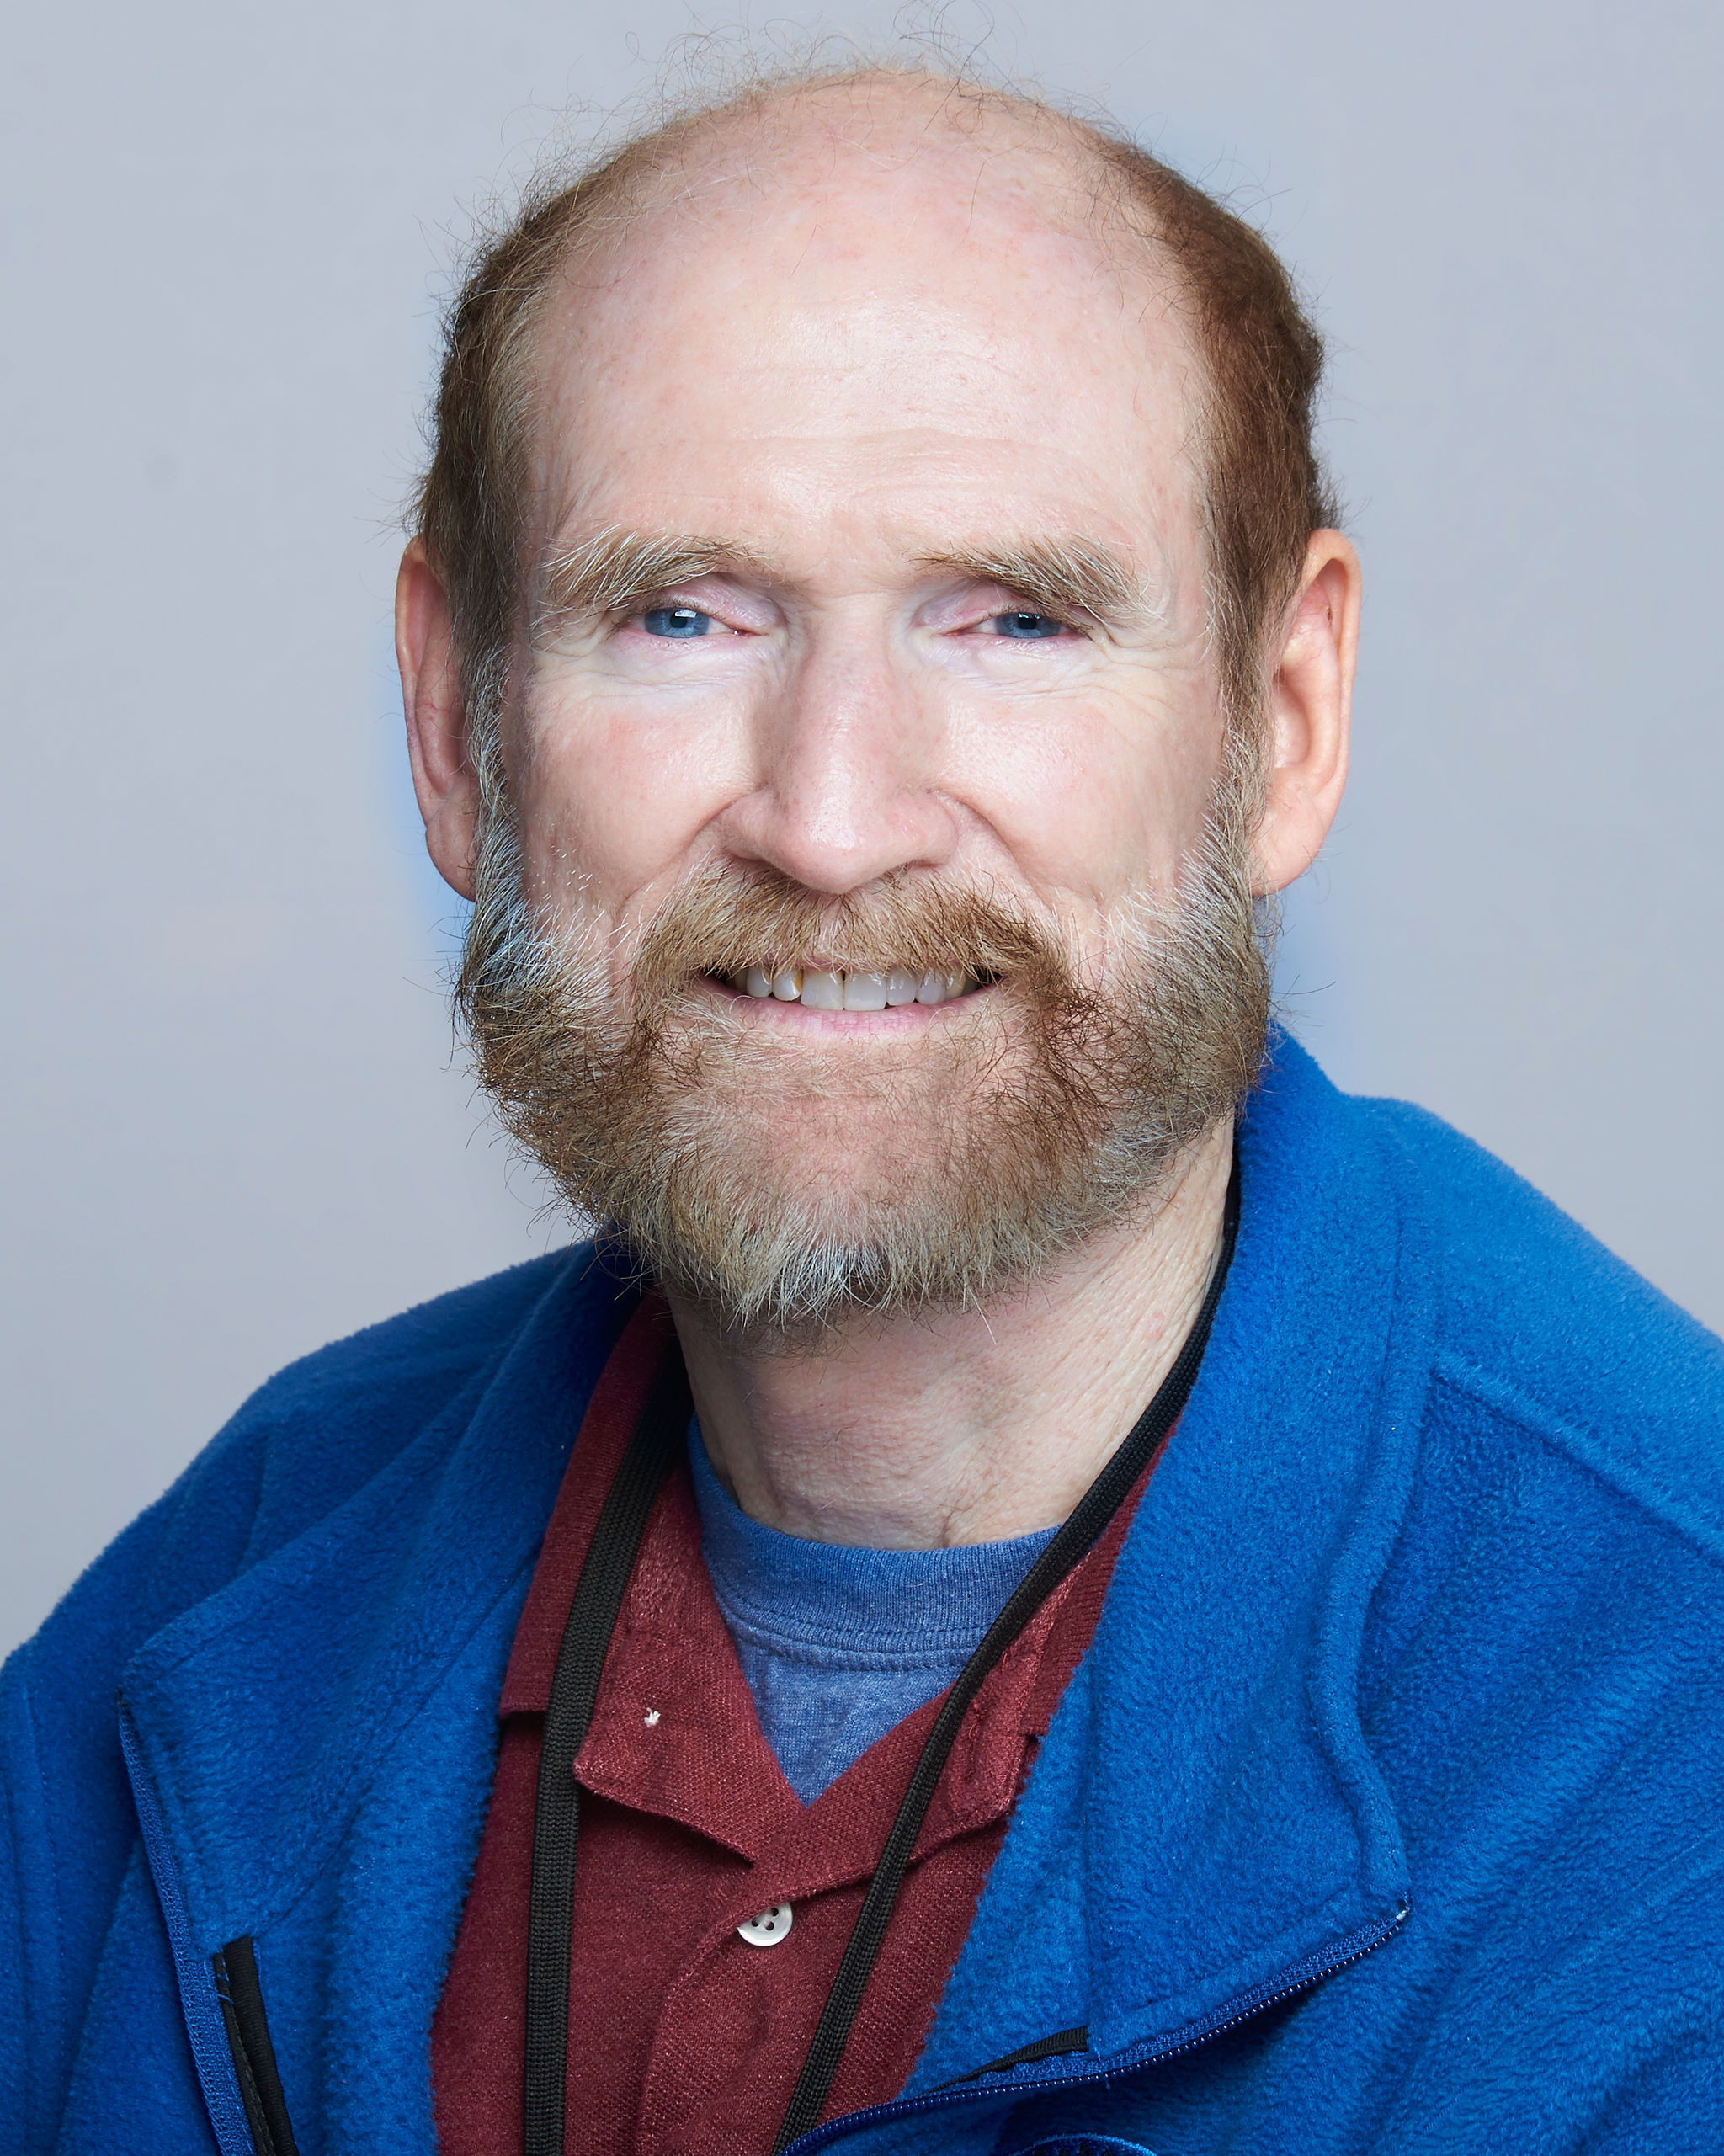 Bob Taylor wearing a maroon shirt and a blue jacket.